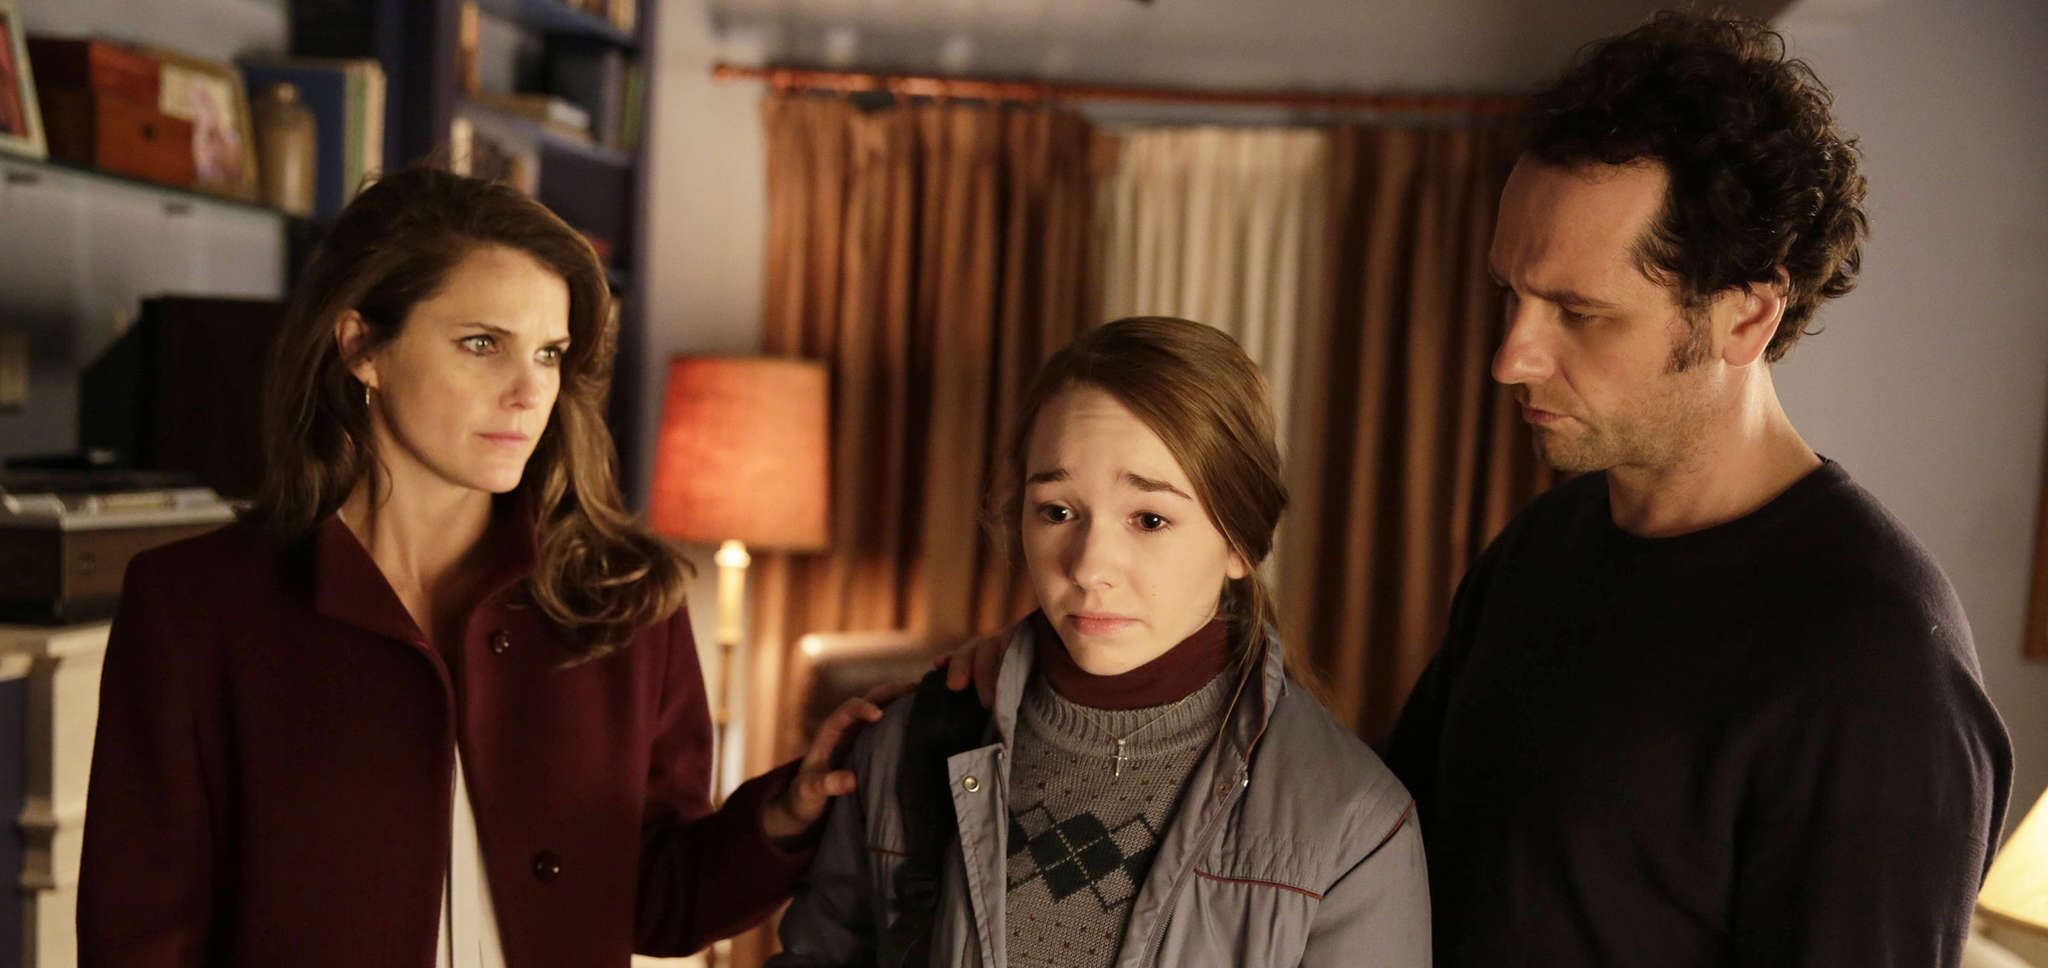 """The Americans"" features (from left) Keri Russell, Holly Taylor, and Matthew Rhys."